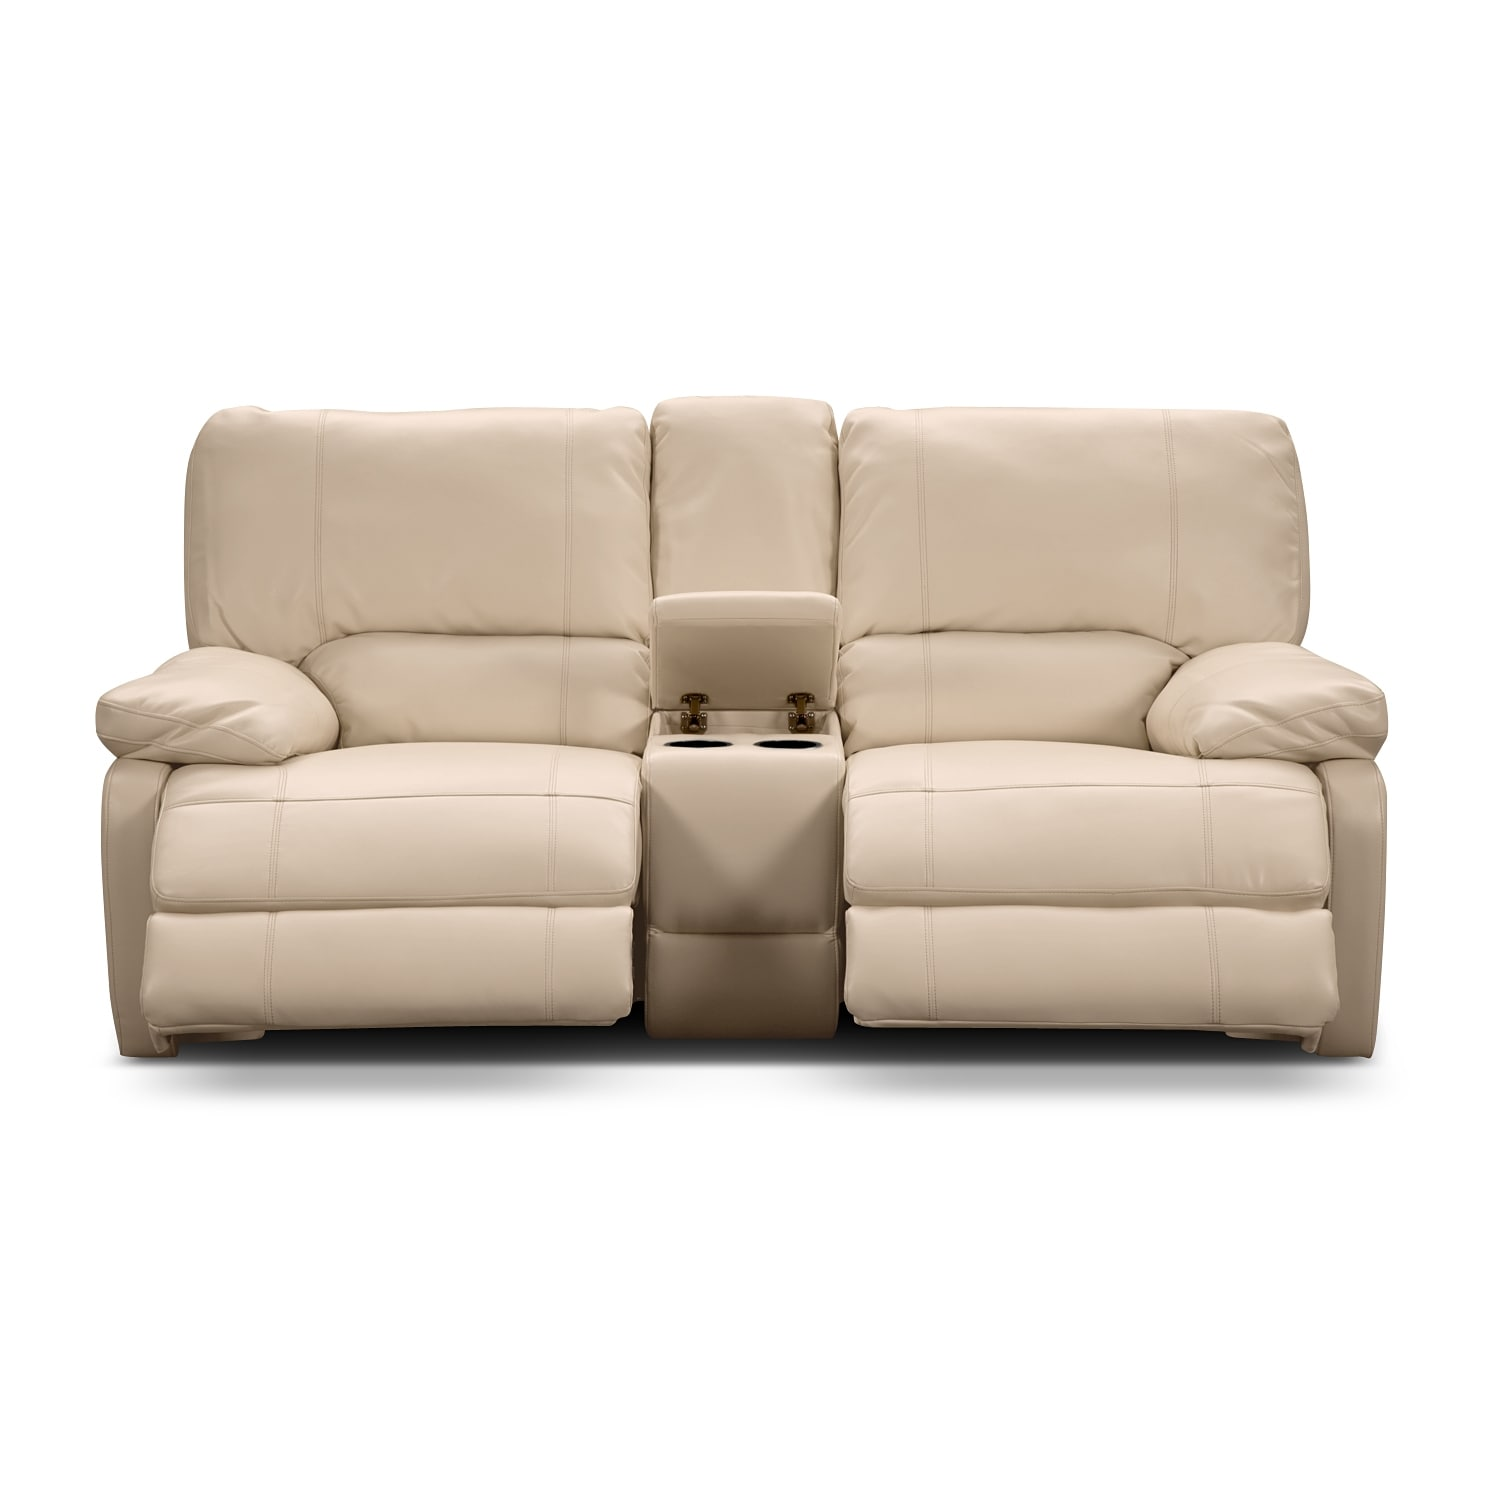 Coronado leather power reclining loveseat value city furniture Leather reclining sofa loveseat